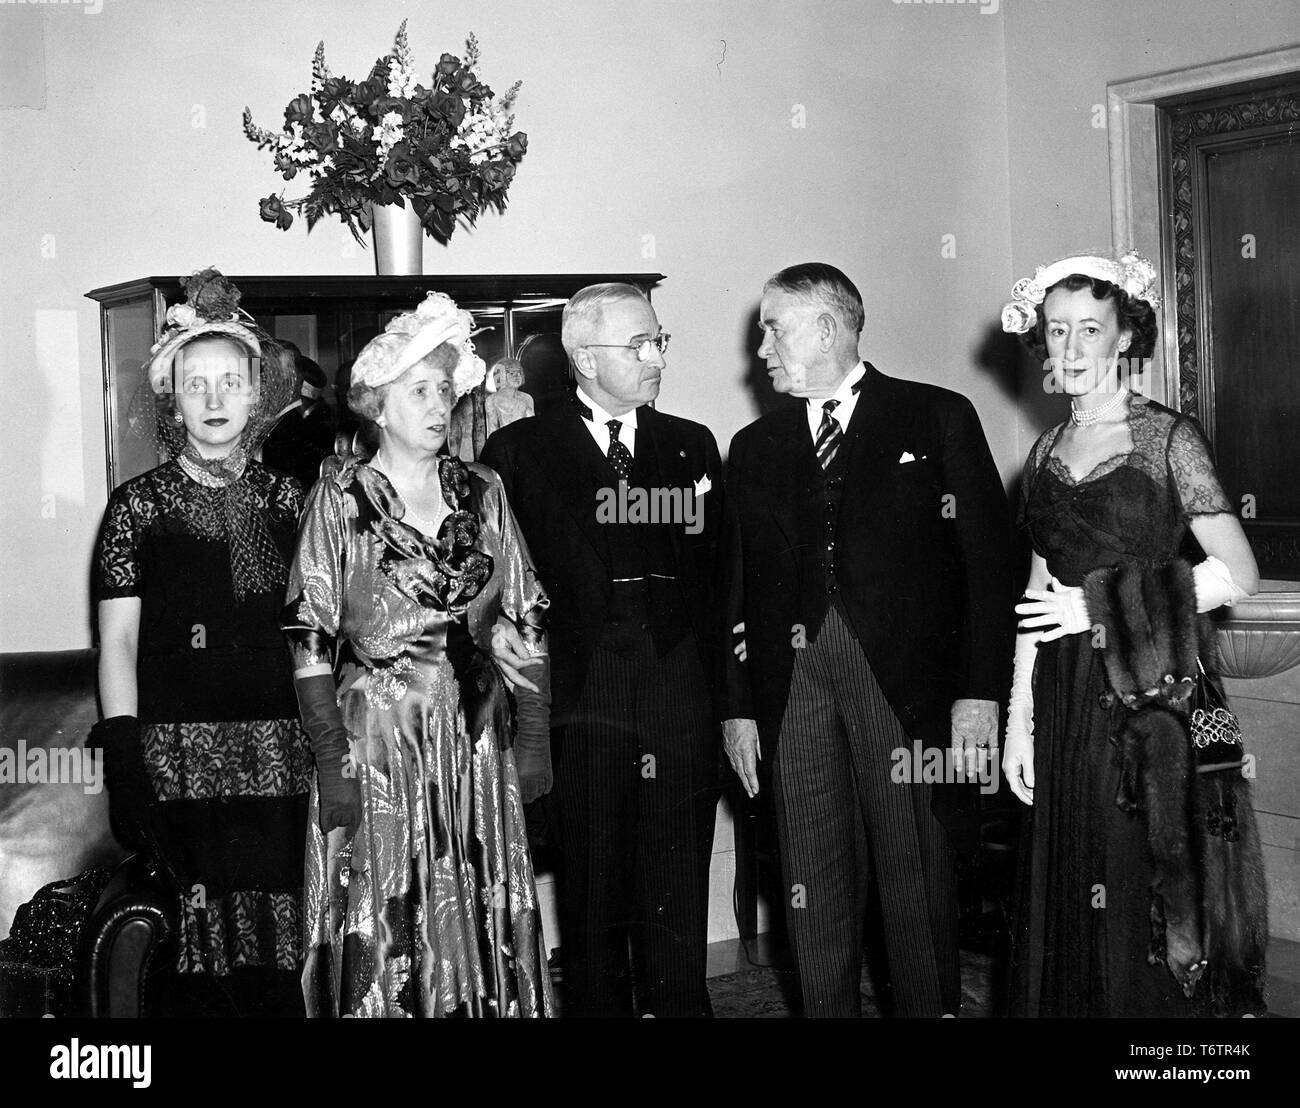 American President Harry Truman (center) stands in three-quarter length view, flanked by his family (left) and Vice President Alben Barkley and his daughter Marian Barkley Truitt (right) during a reception at the National Gallery of Art, Washington, DC, January 20, 1949. Image courtesy National Archives. () - Stock Image